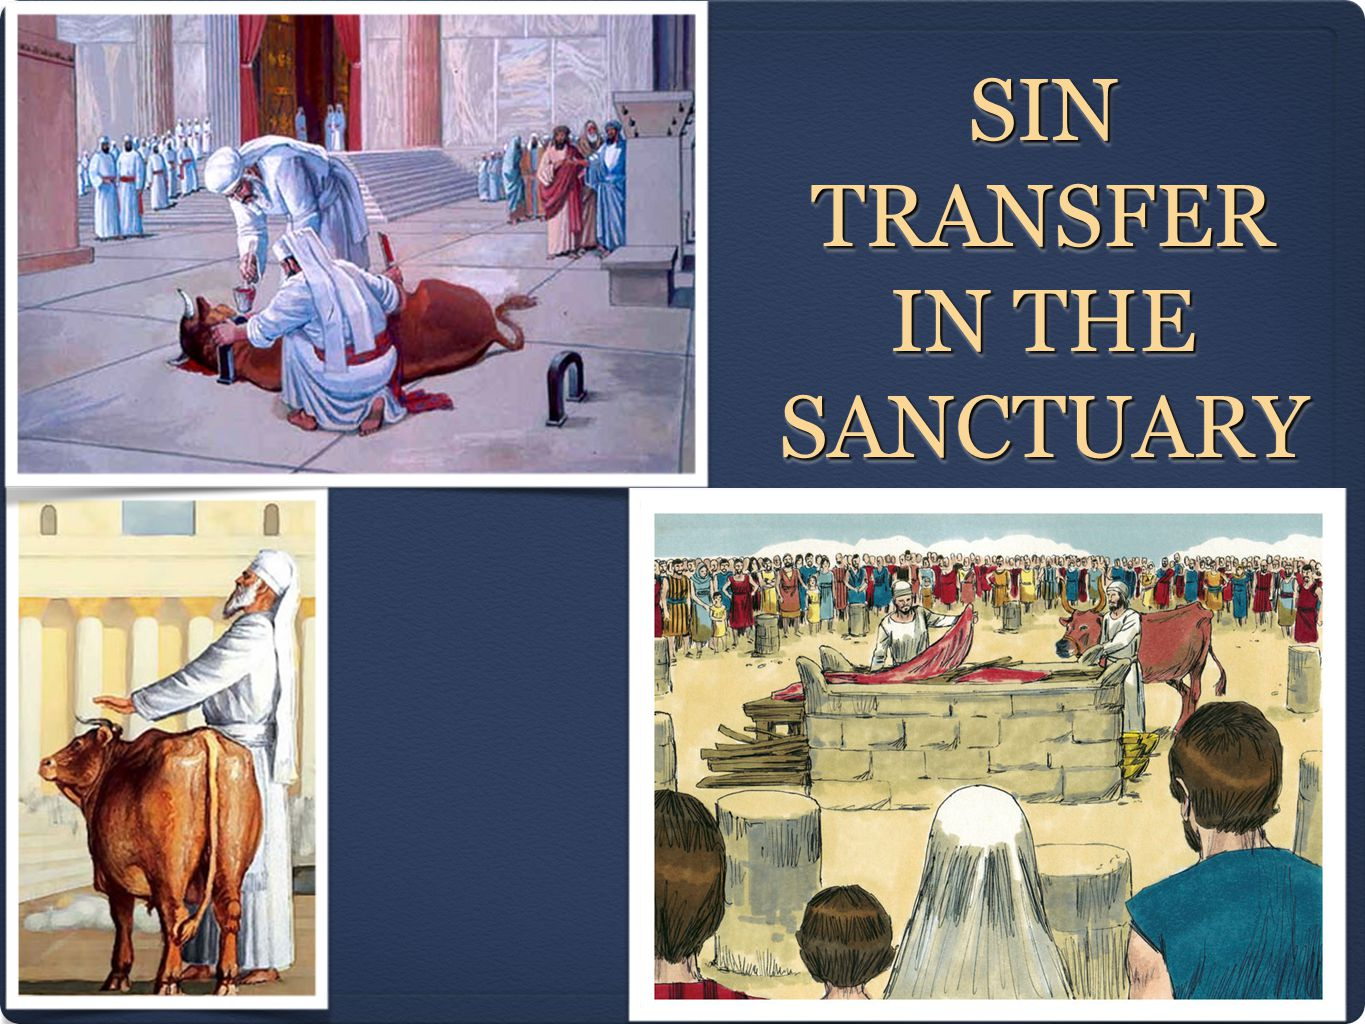 SIN TRANSFER IN THE SANCTUARY